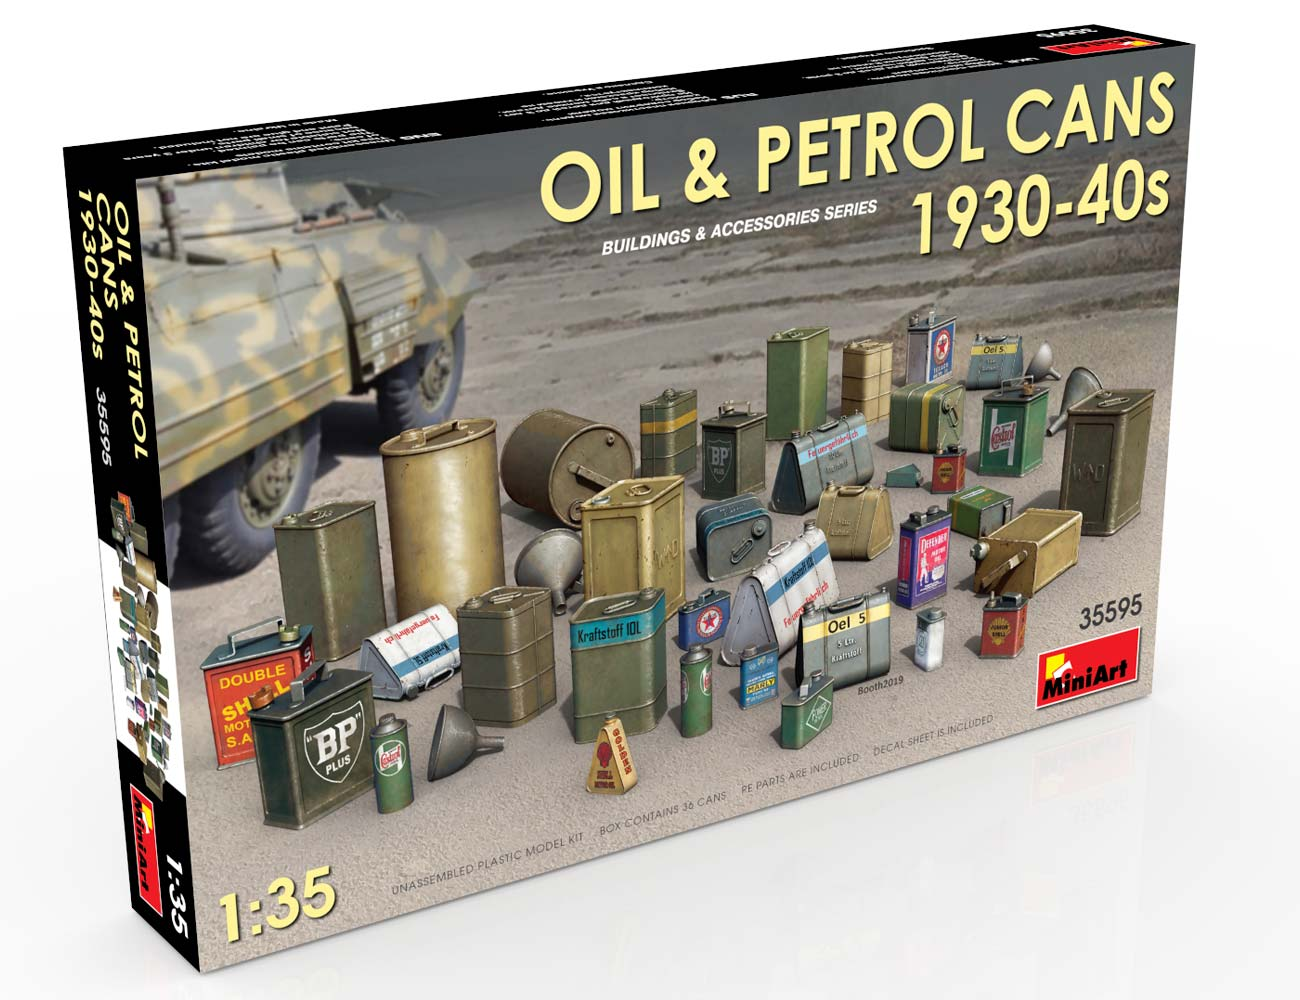 New Photos of Kit: 35595 OIL & PETROL CANS 1930-40s